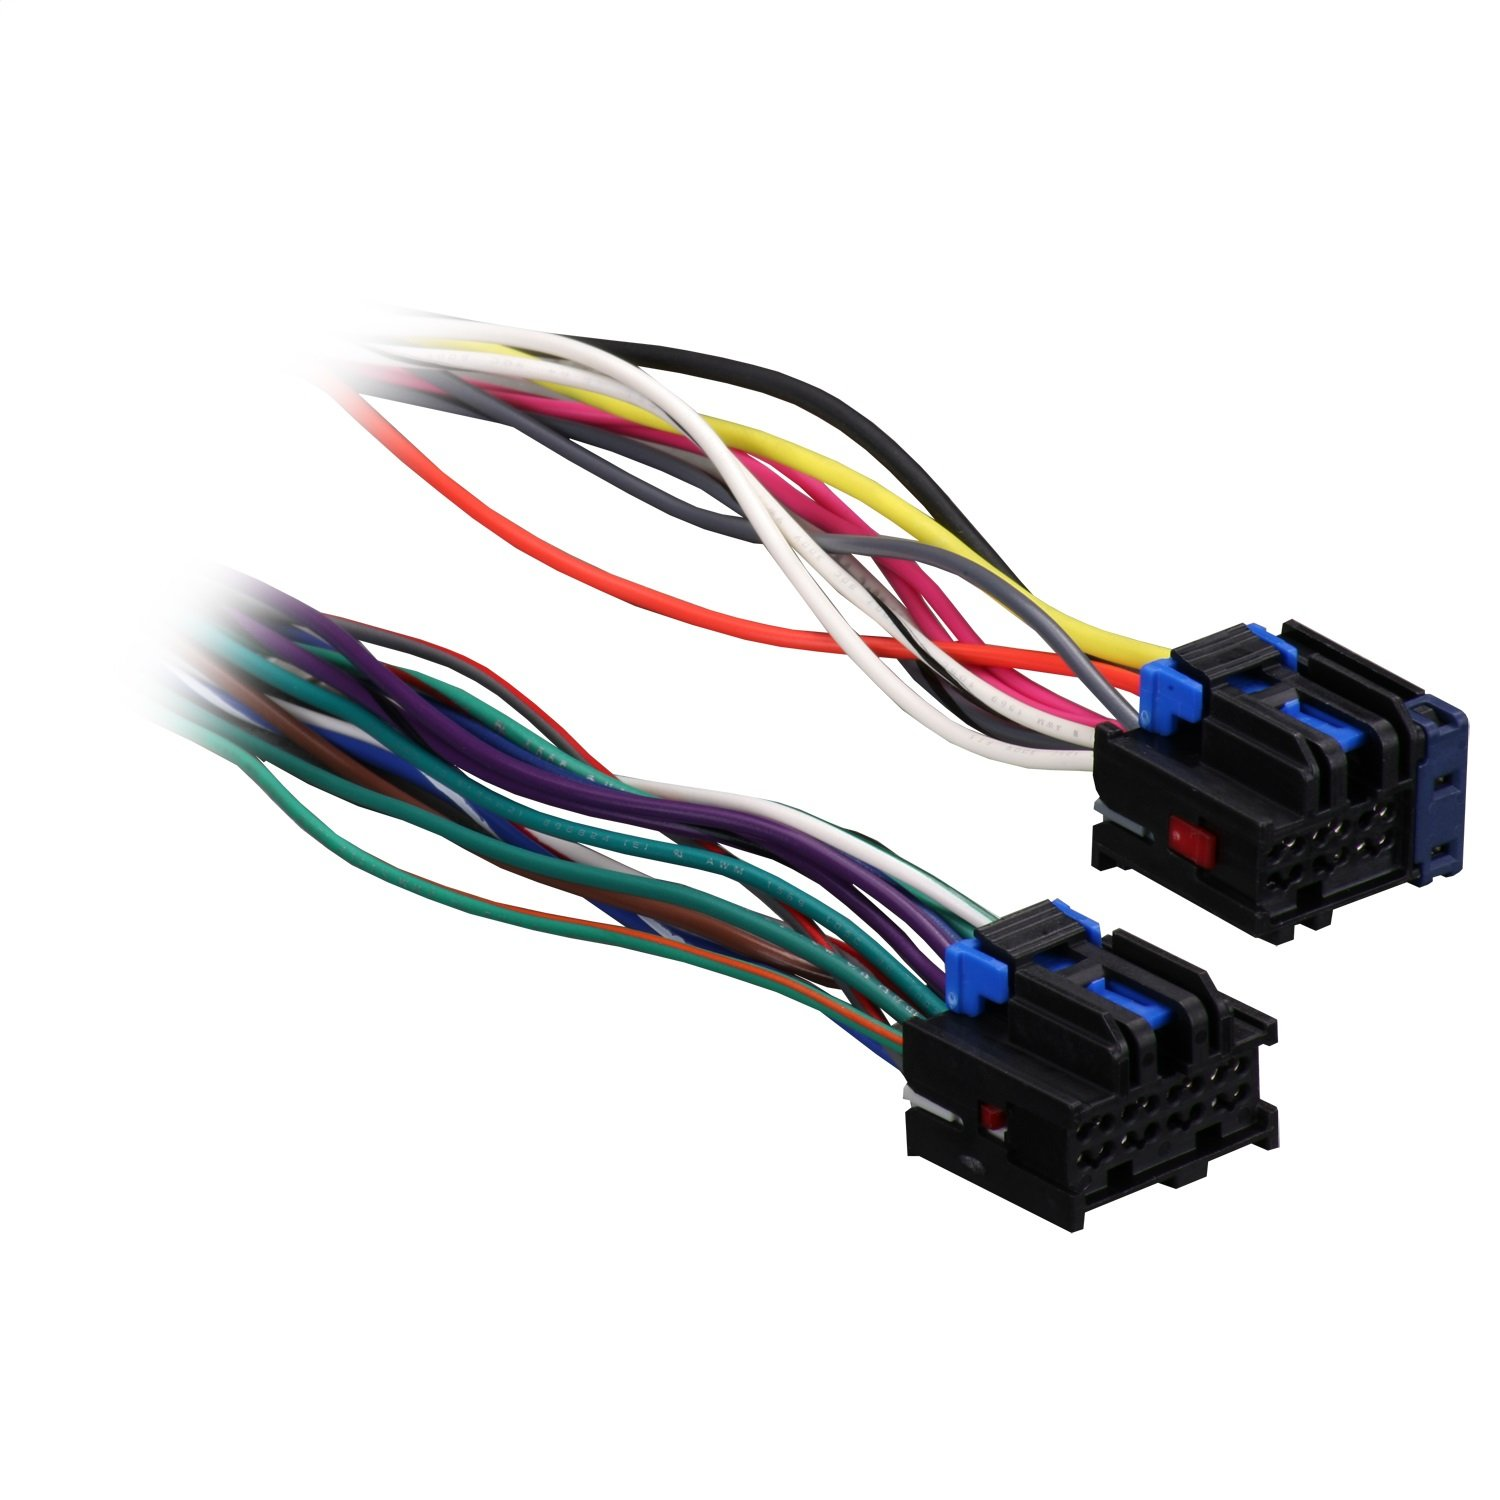 Metra Reverse Wiring Harness 71 2104 For Select Gm 2004 Chevrolet Aveo Vehicles 14 16 Way Cell Phones Accessories